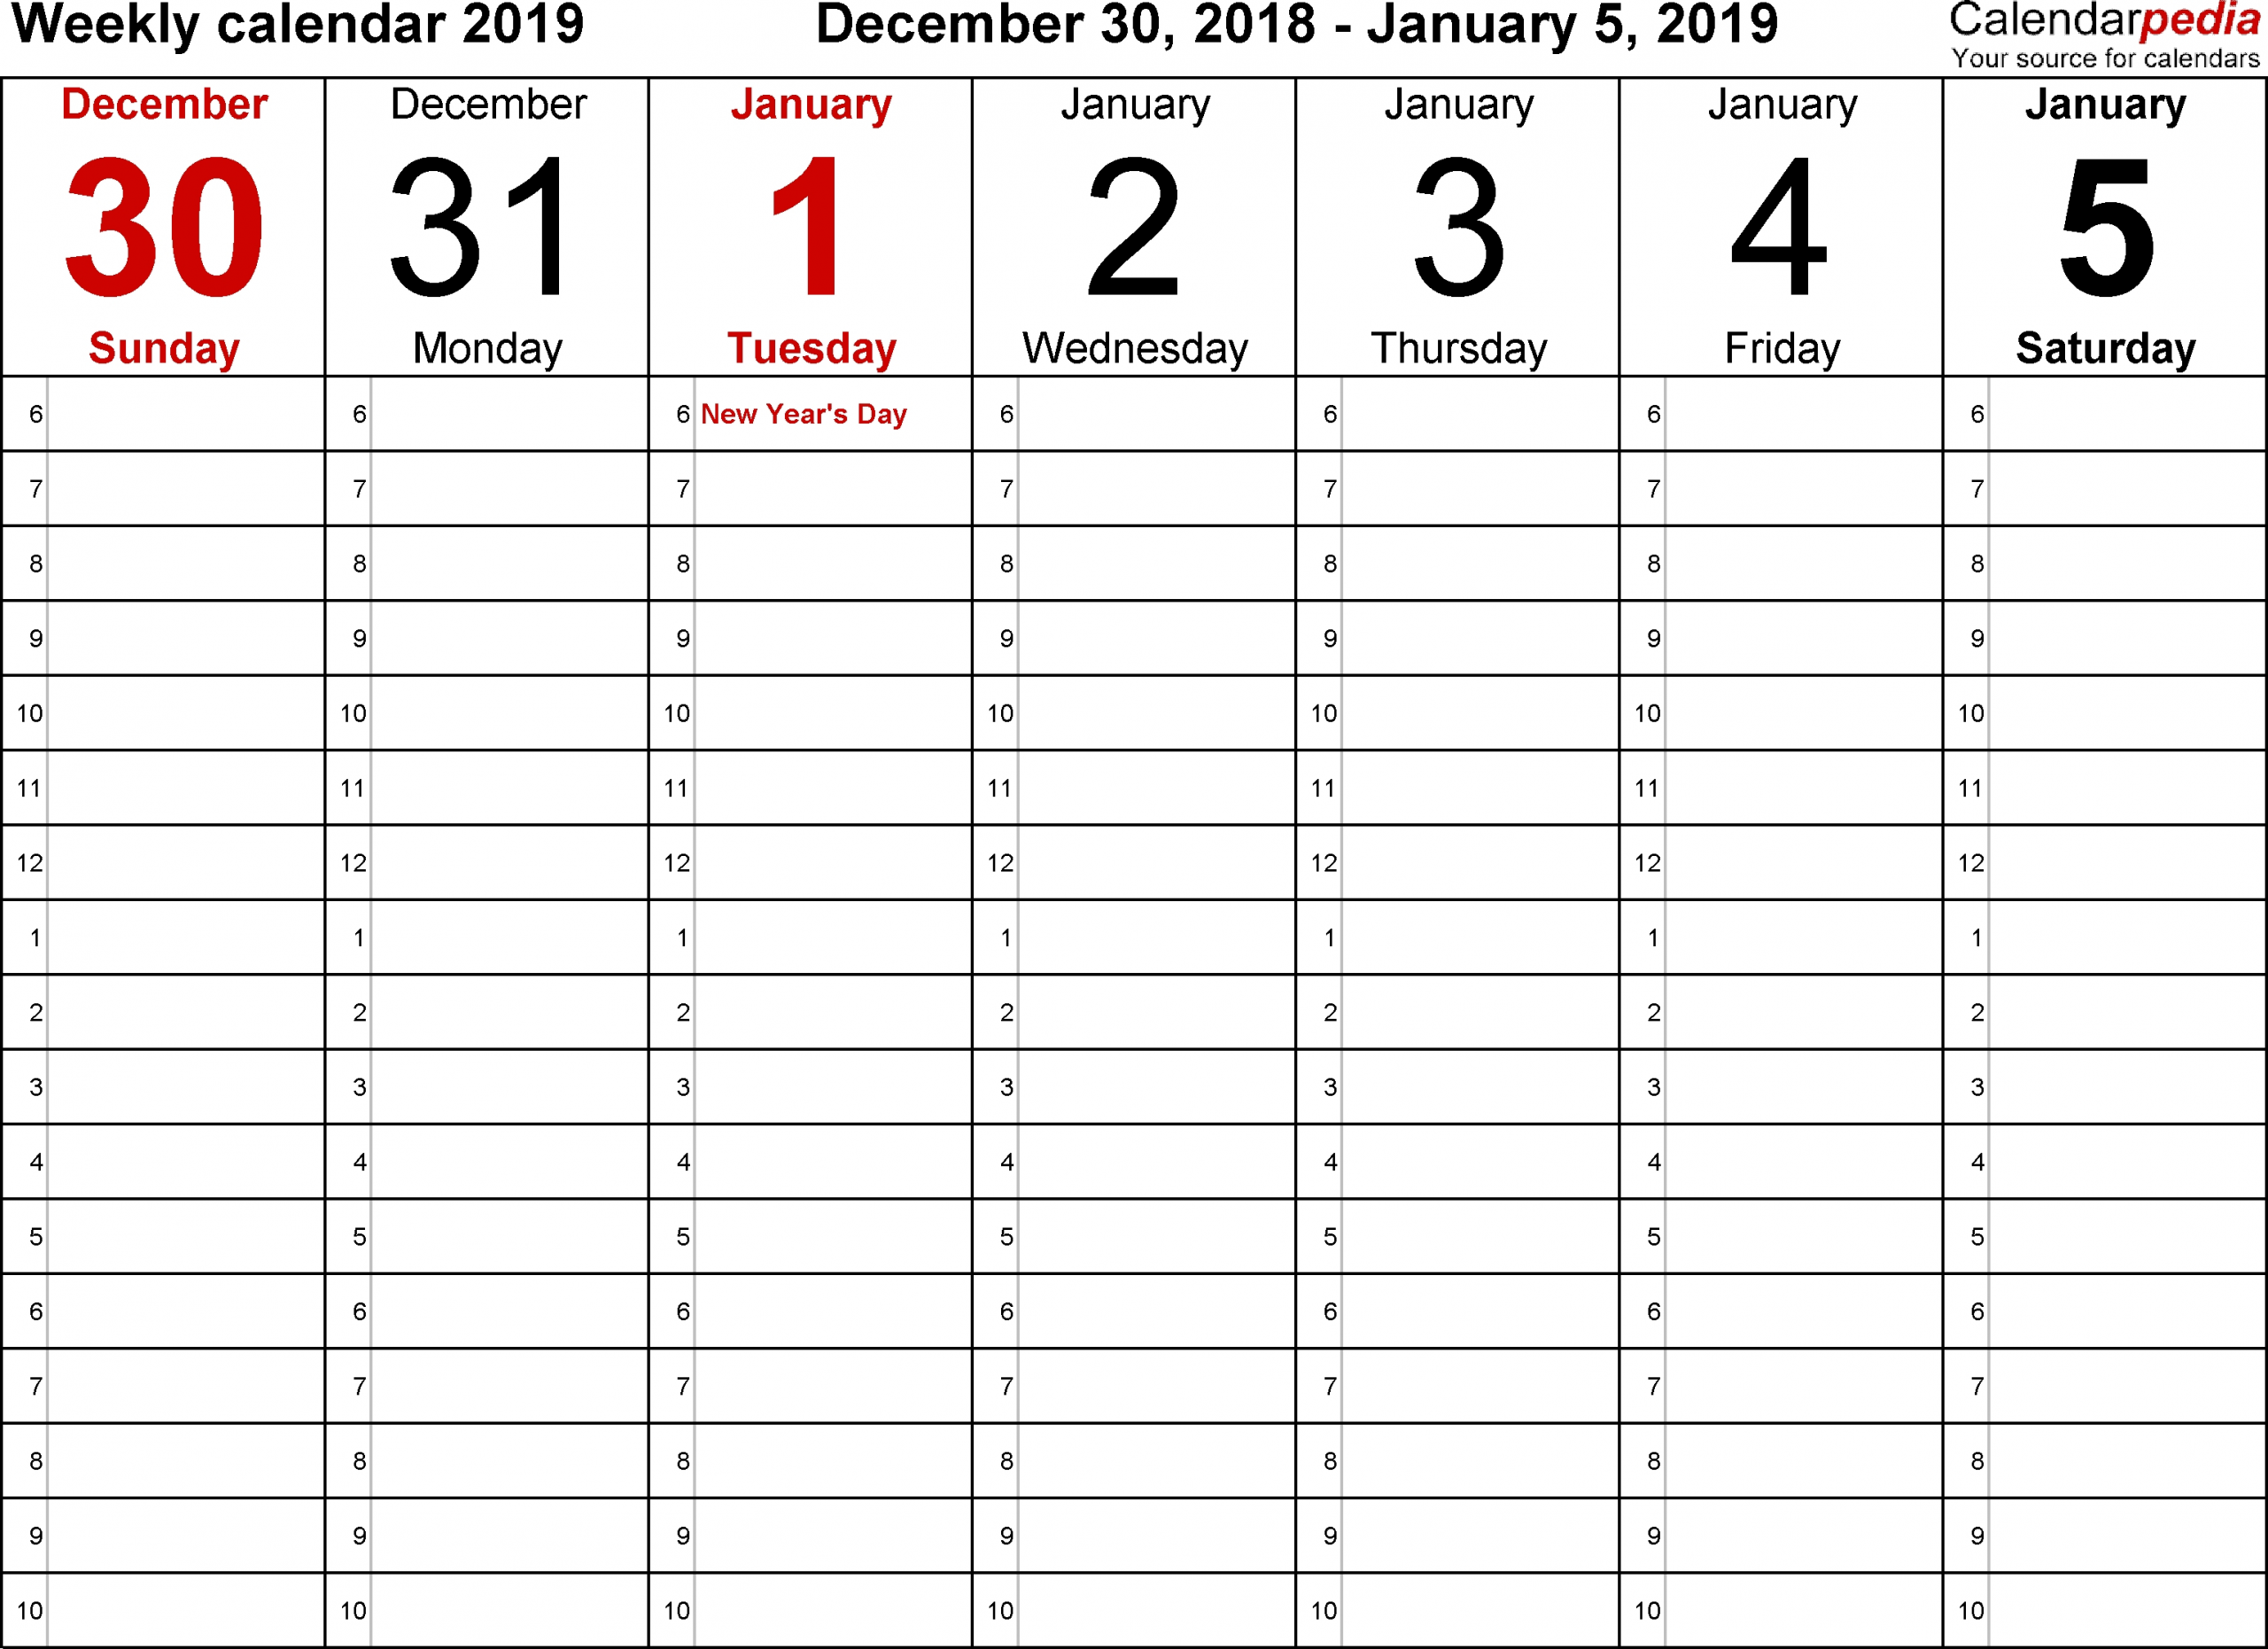 Blank Calendars To Print With Time Slots - Calendar Free Weekly Planner With Time Slots